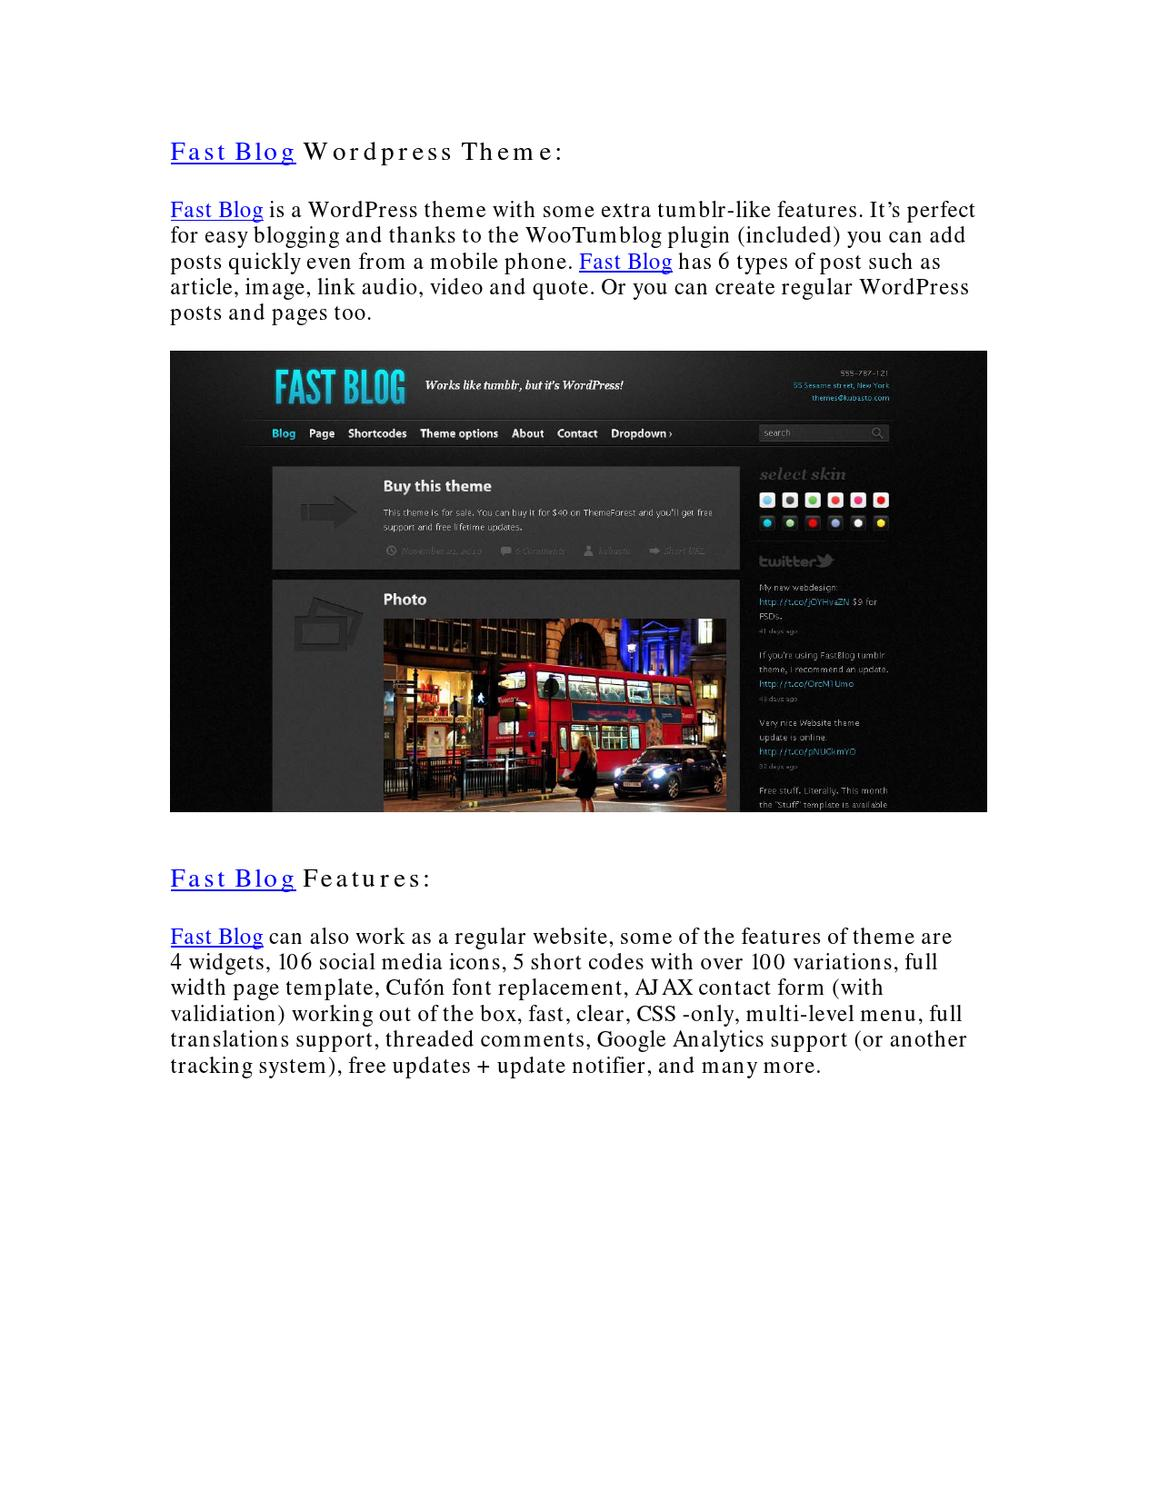 Fast Blog Wordpress Theme by Jose Roque - issuu